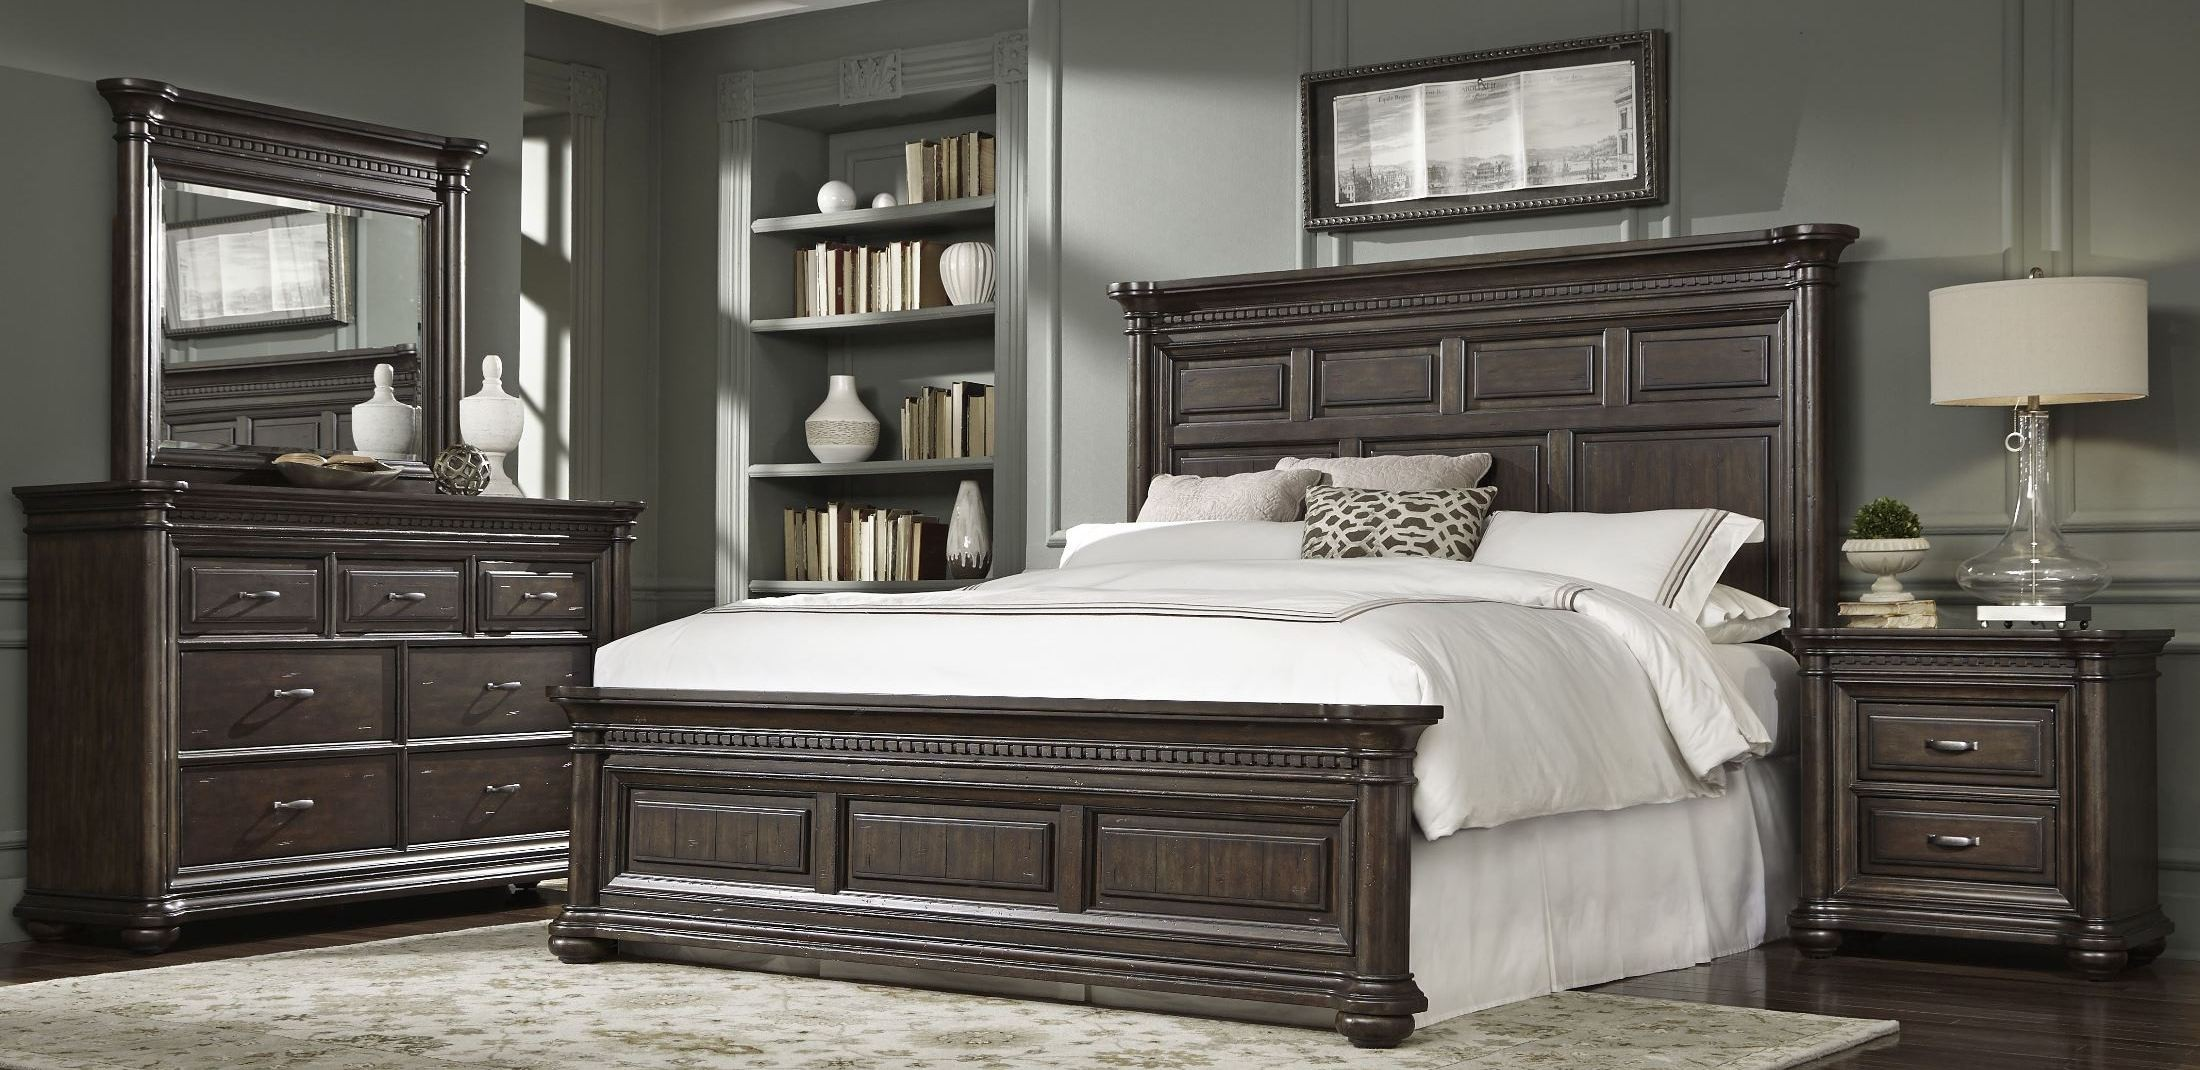 Grand Manor Panel Bedroom Set From Samuel Lawrence 8920 250 251 400 Coleman Furniture